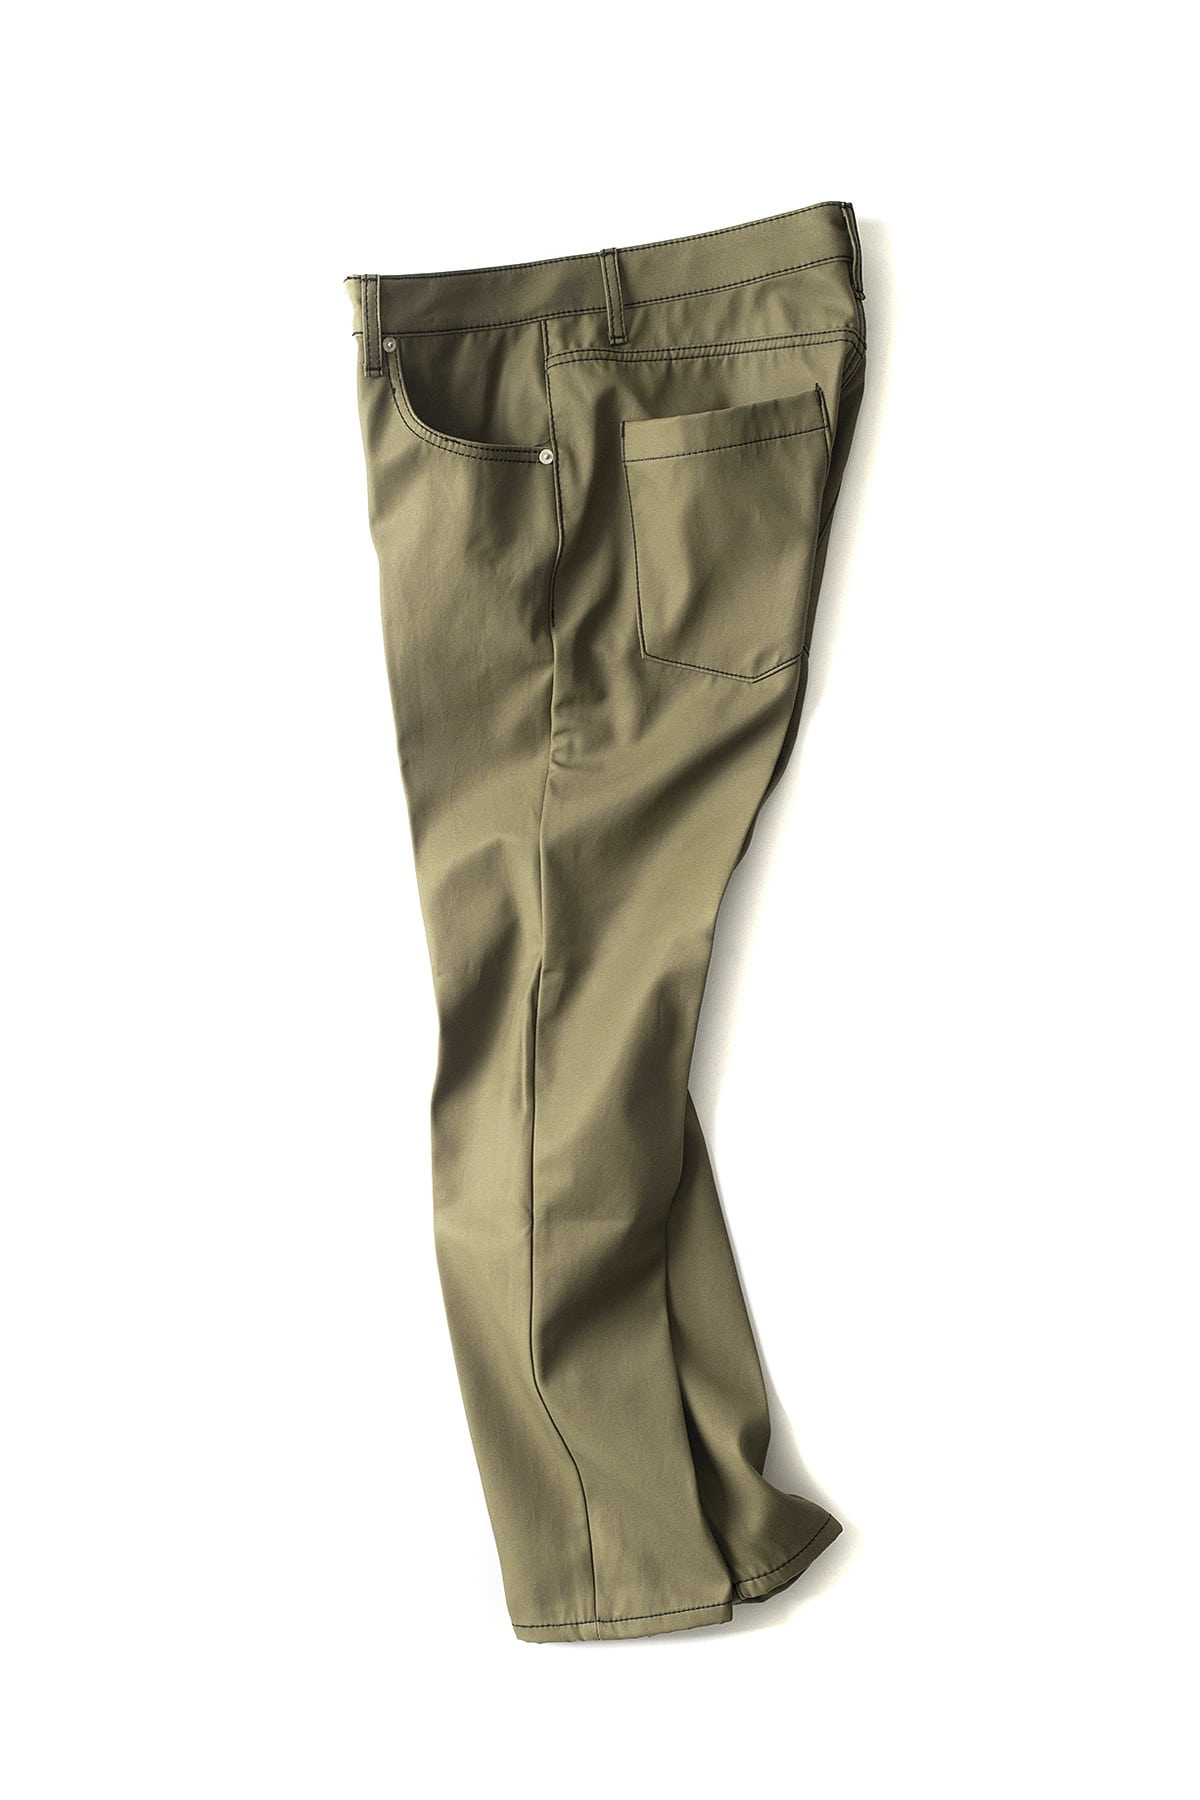 BIRTHDAYSUIT : Slim Fit 5Pocket Pants (Khaki)